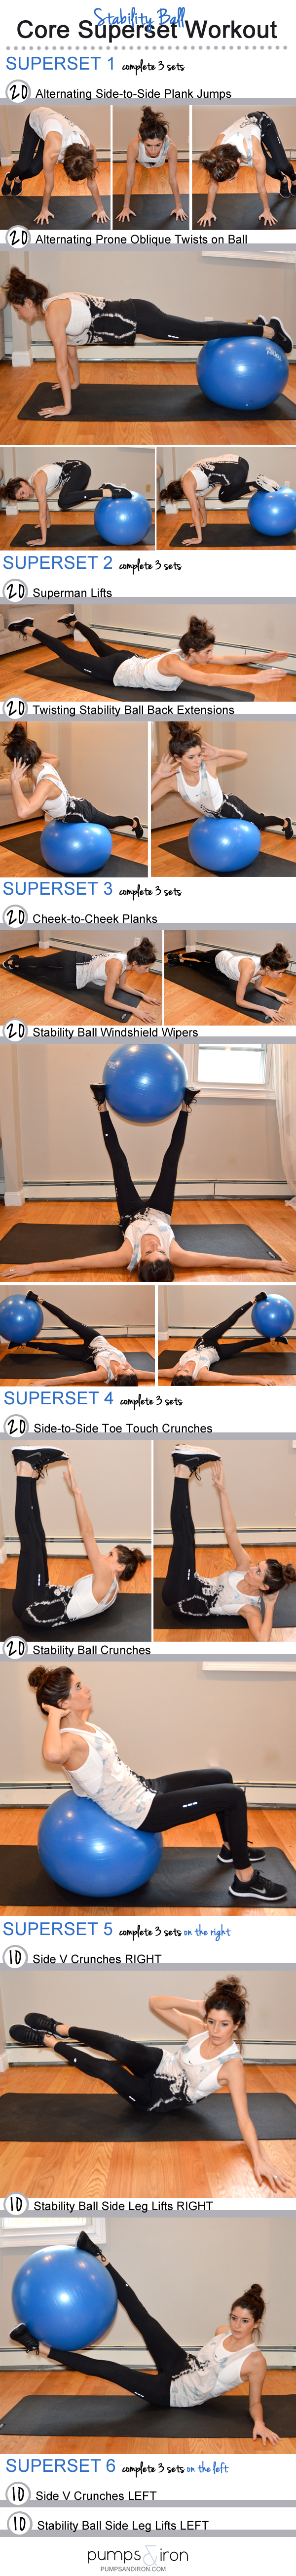 Core Superset Workout with the Stability Ball